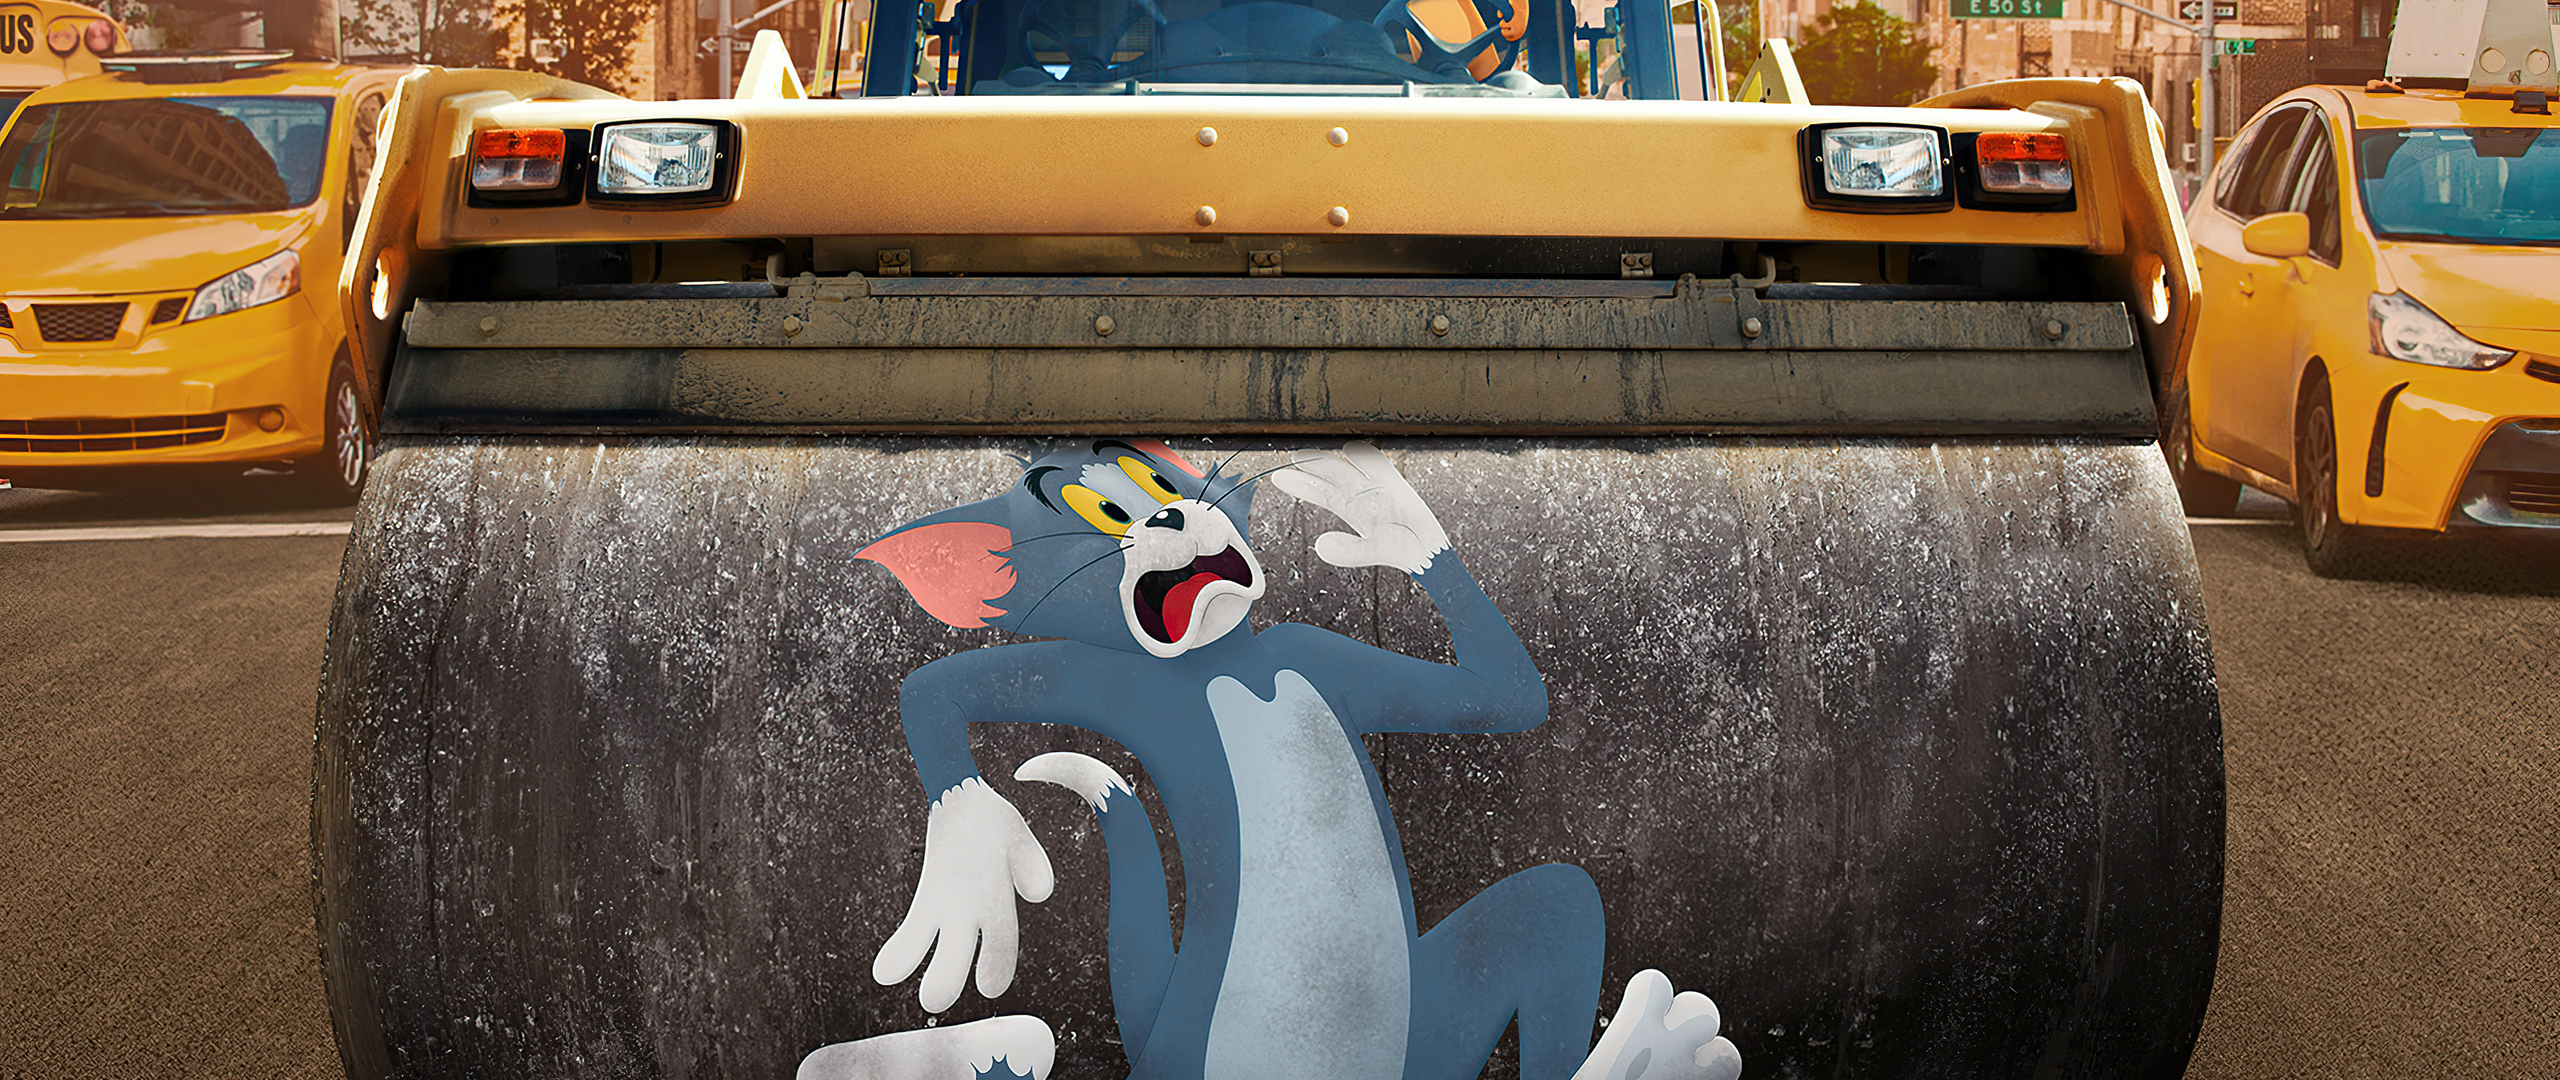 2021-tom-and-jerry-7w.jpg